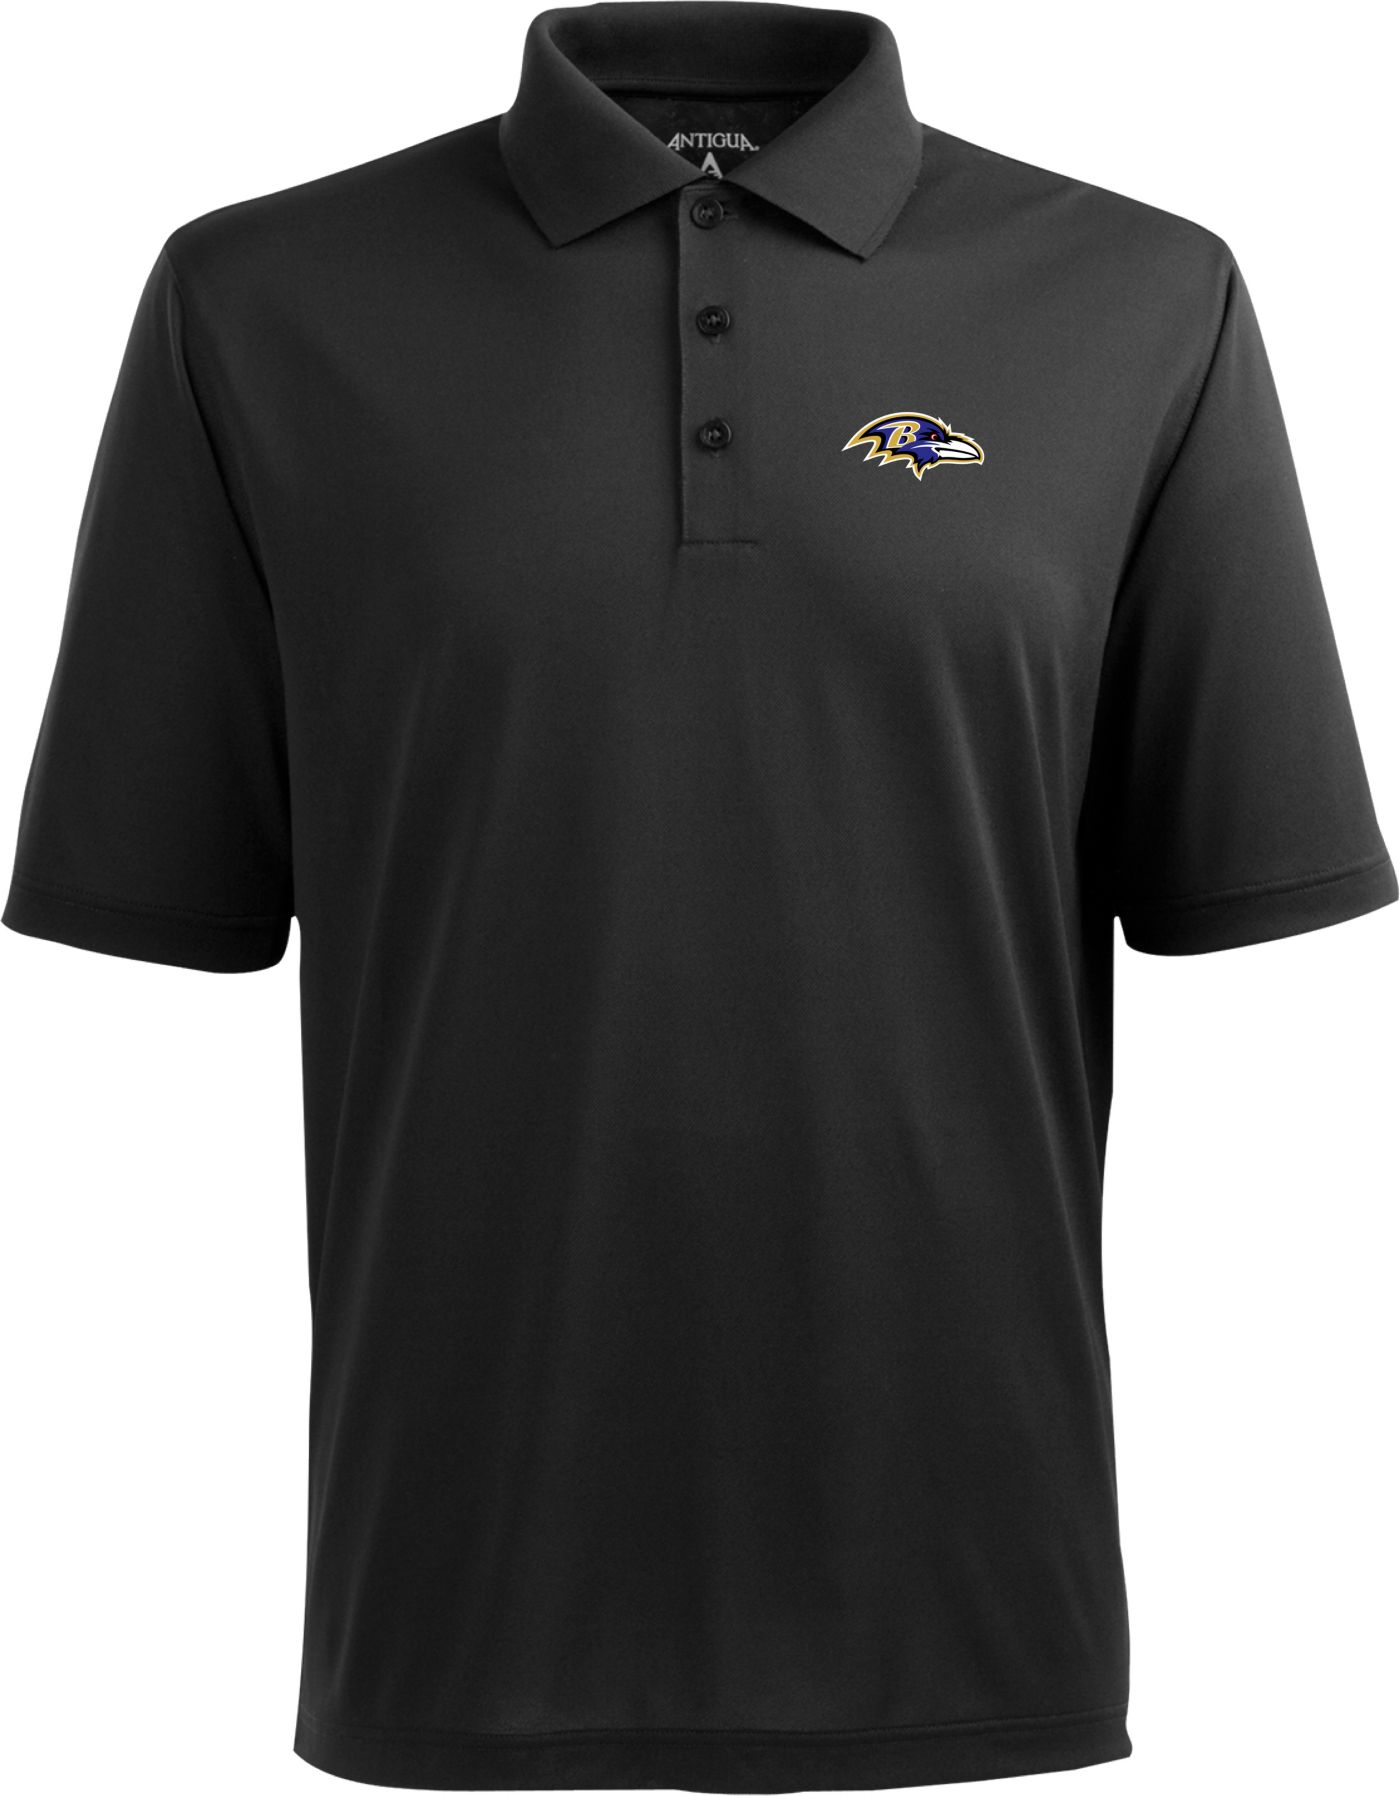 Antigua Men's Baltimore Ravens Black Pique Xtra-Lite Polo